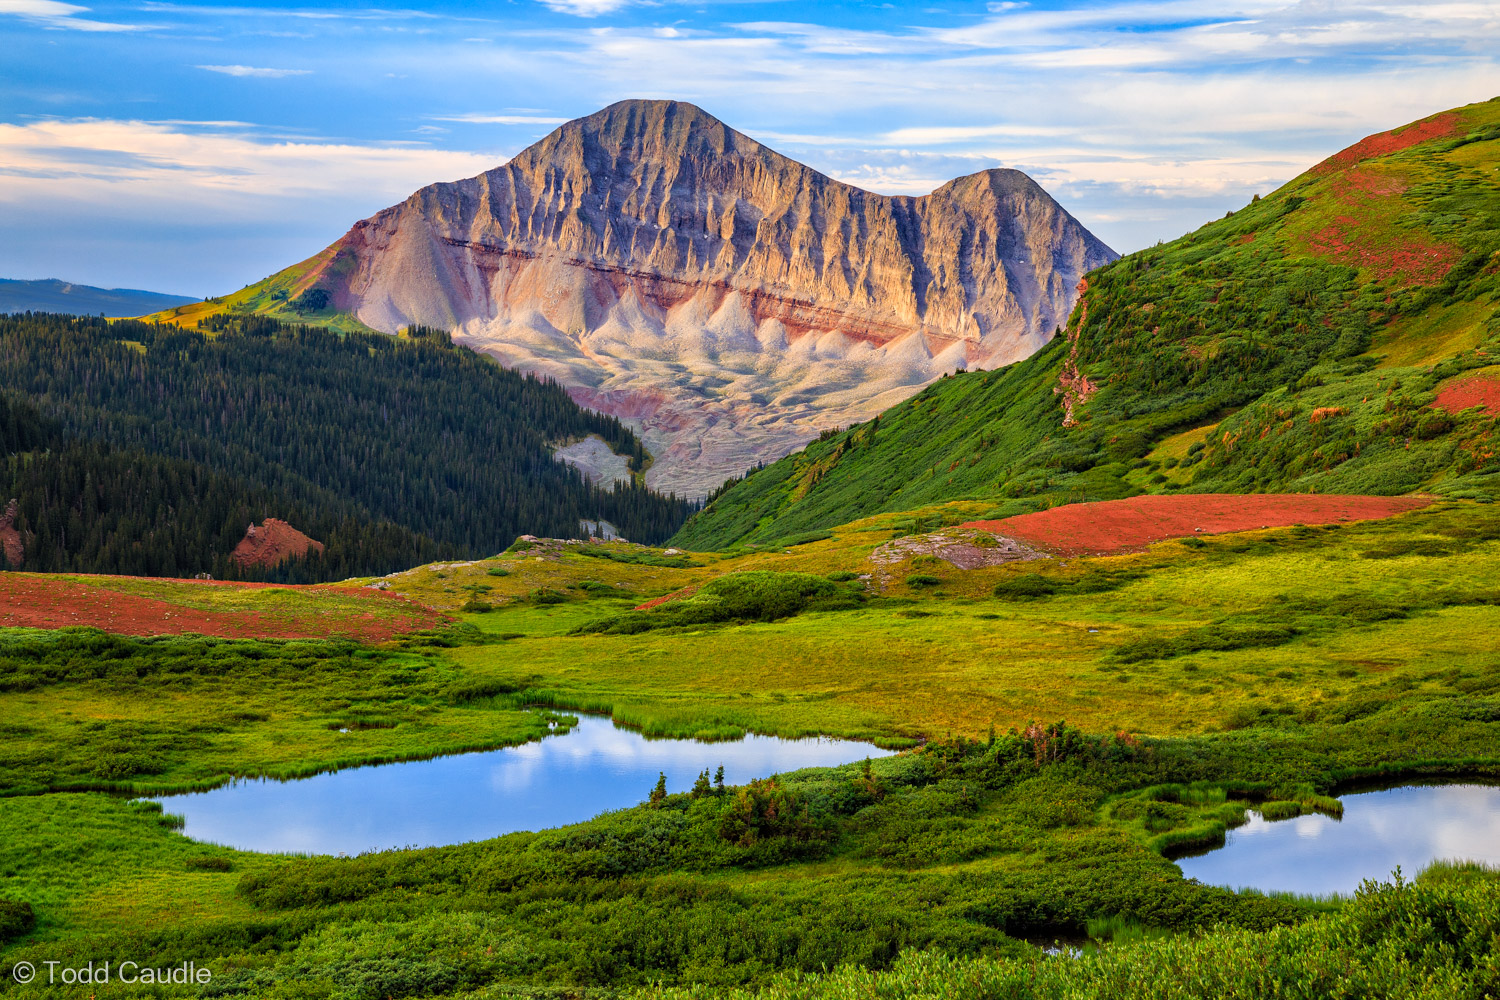 Engineer Mountain is one of the most interesting mountains in Colorado. Look closely and you'll see a series of rock glaciers...